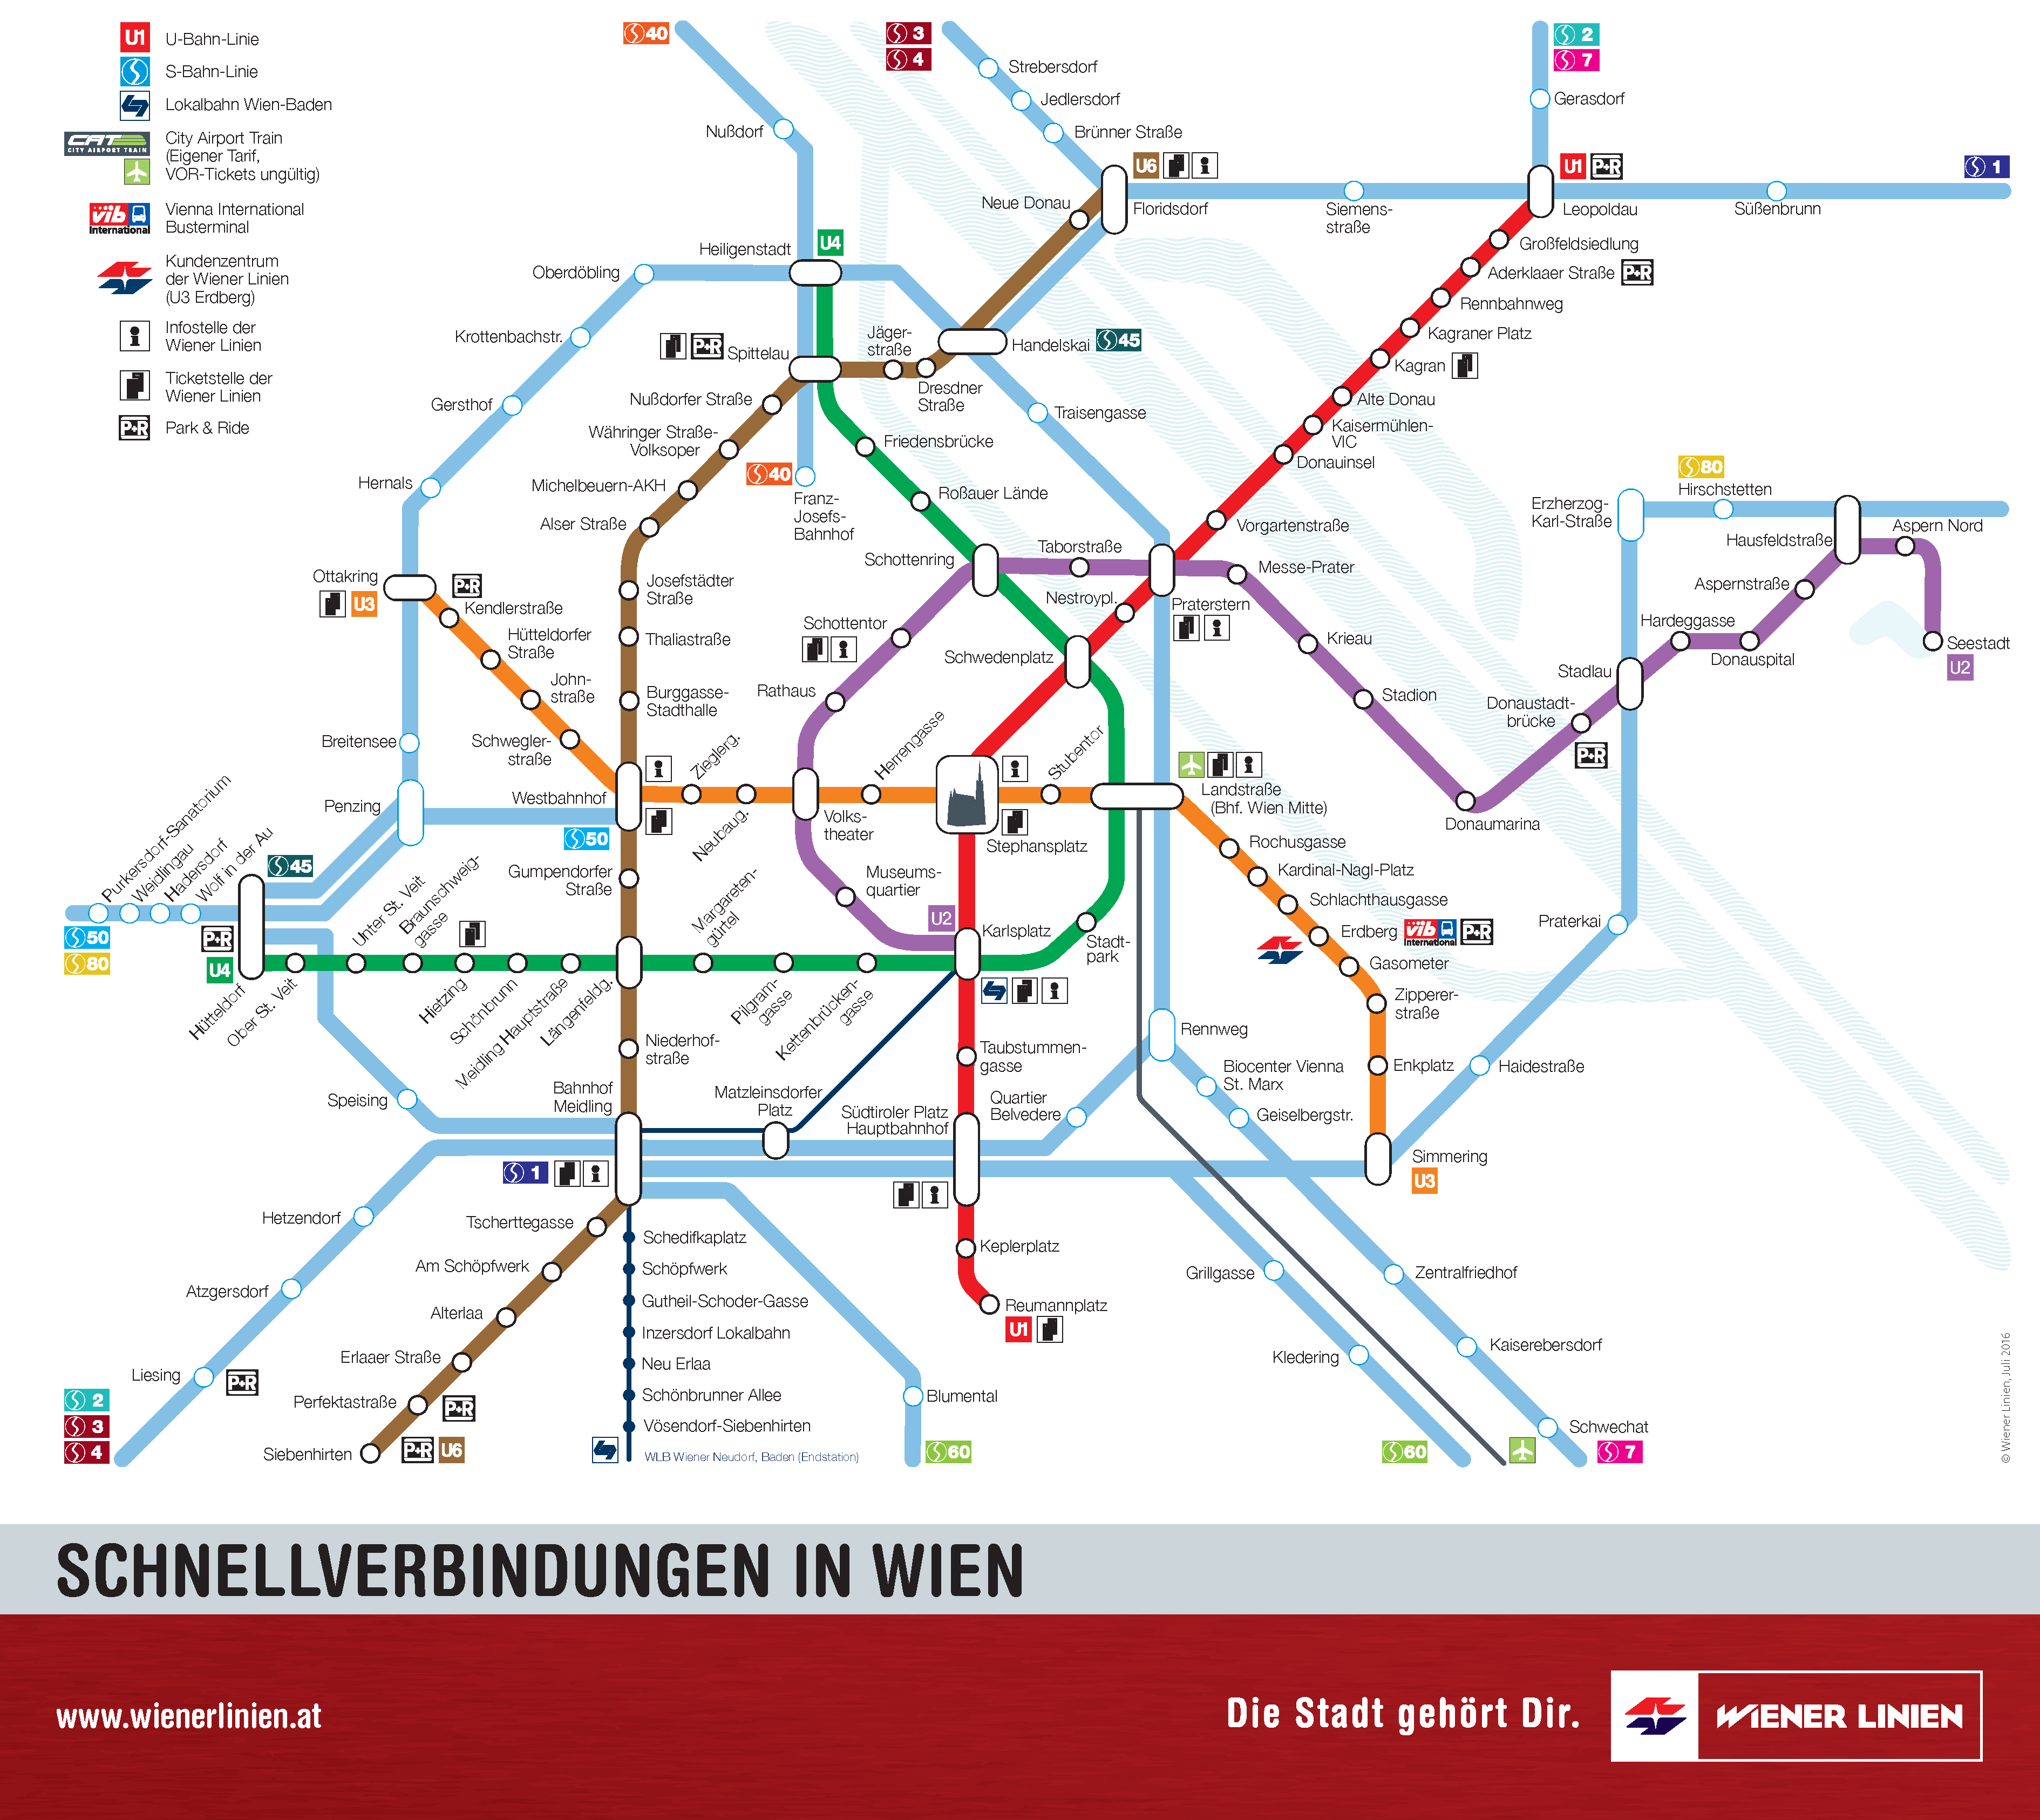 Wiener linien fast connections map